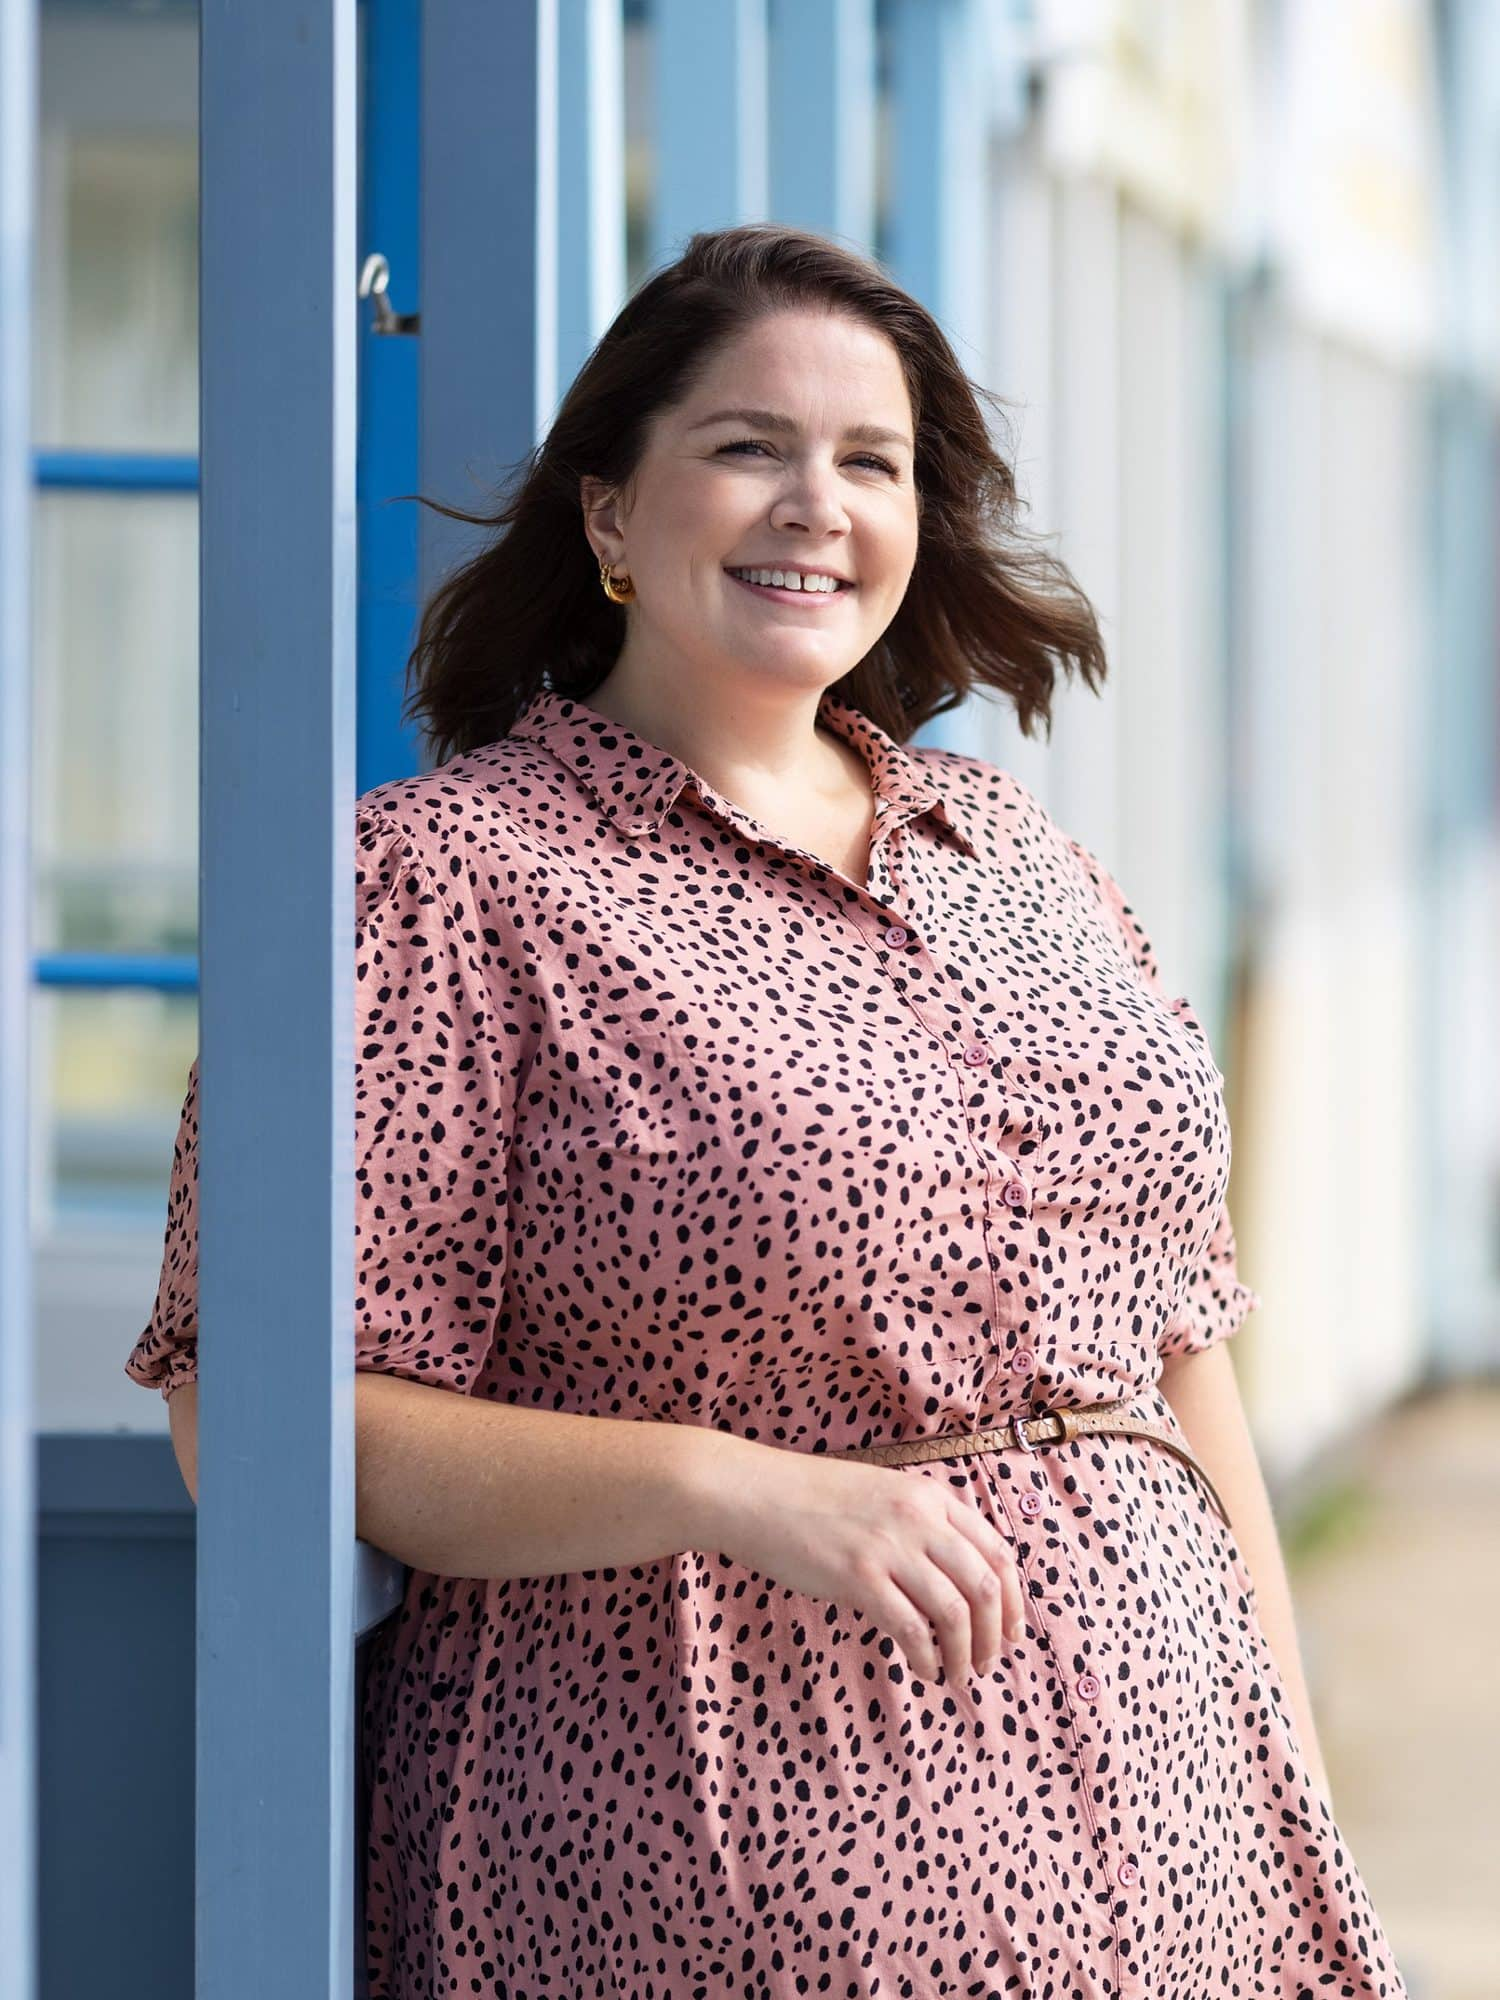 Lady in pink dress poses for a Personal Branding Headshot by Beach huts in Southwold